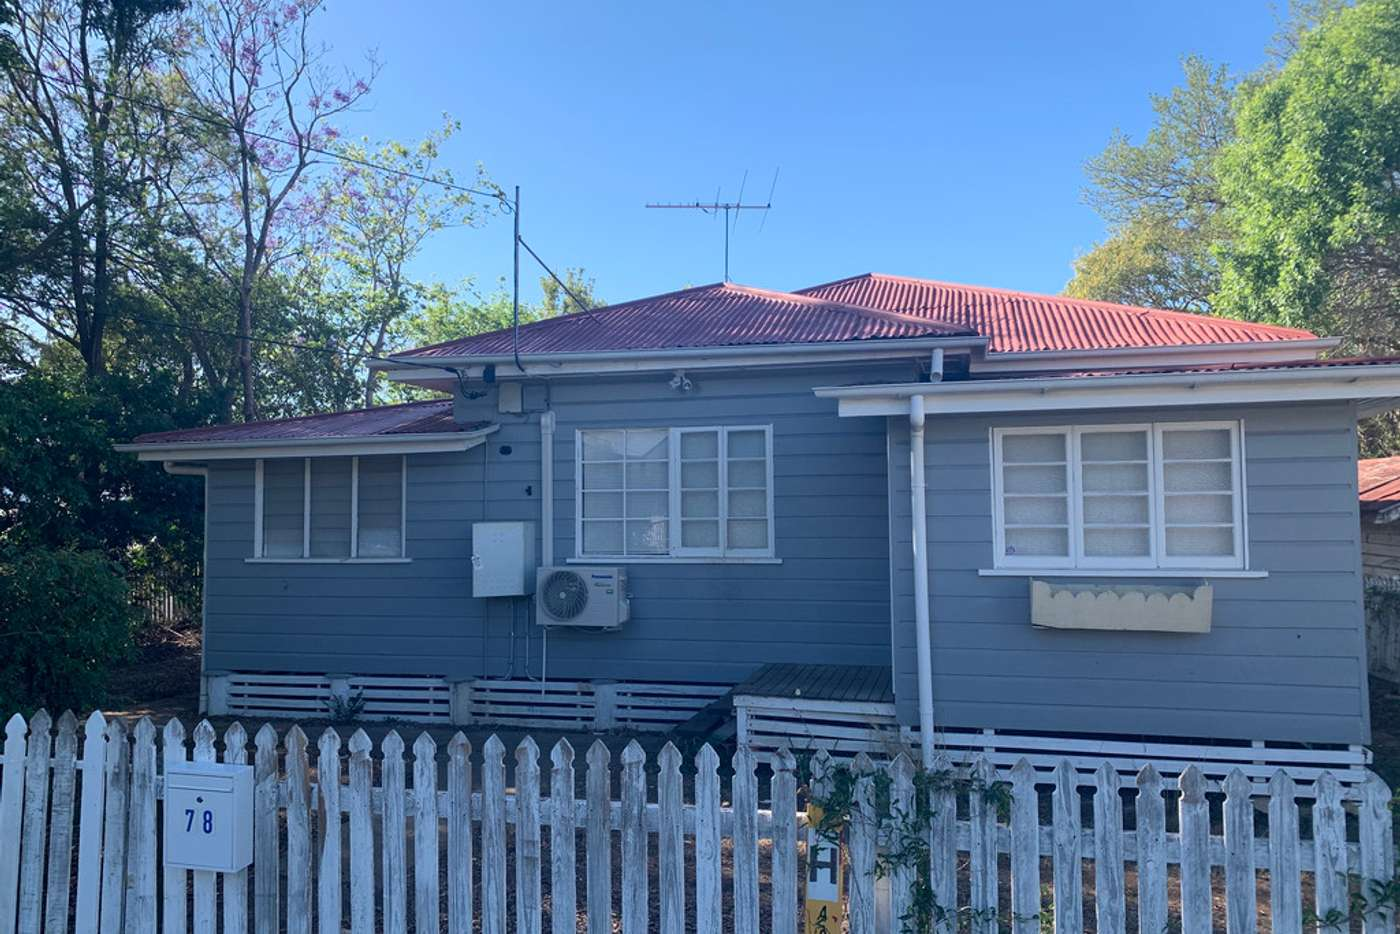 Main view of Homely house listing, 78 Woodford Street, One Mile QLD 4305